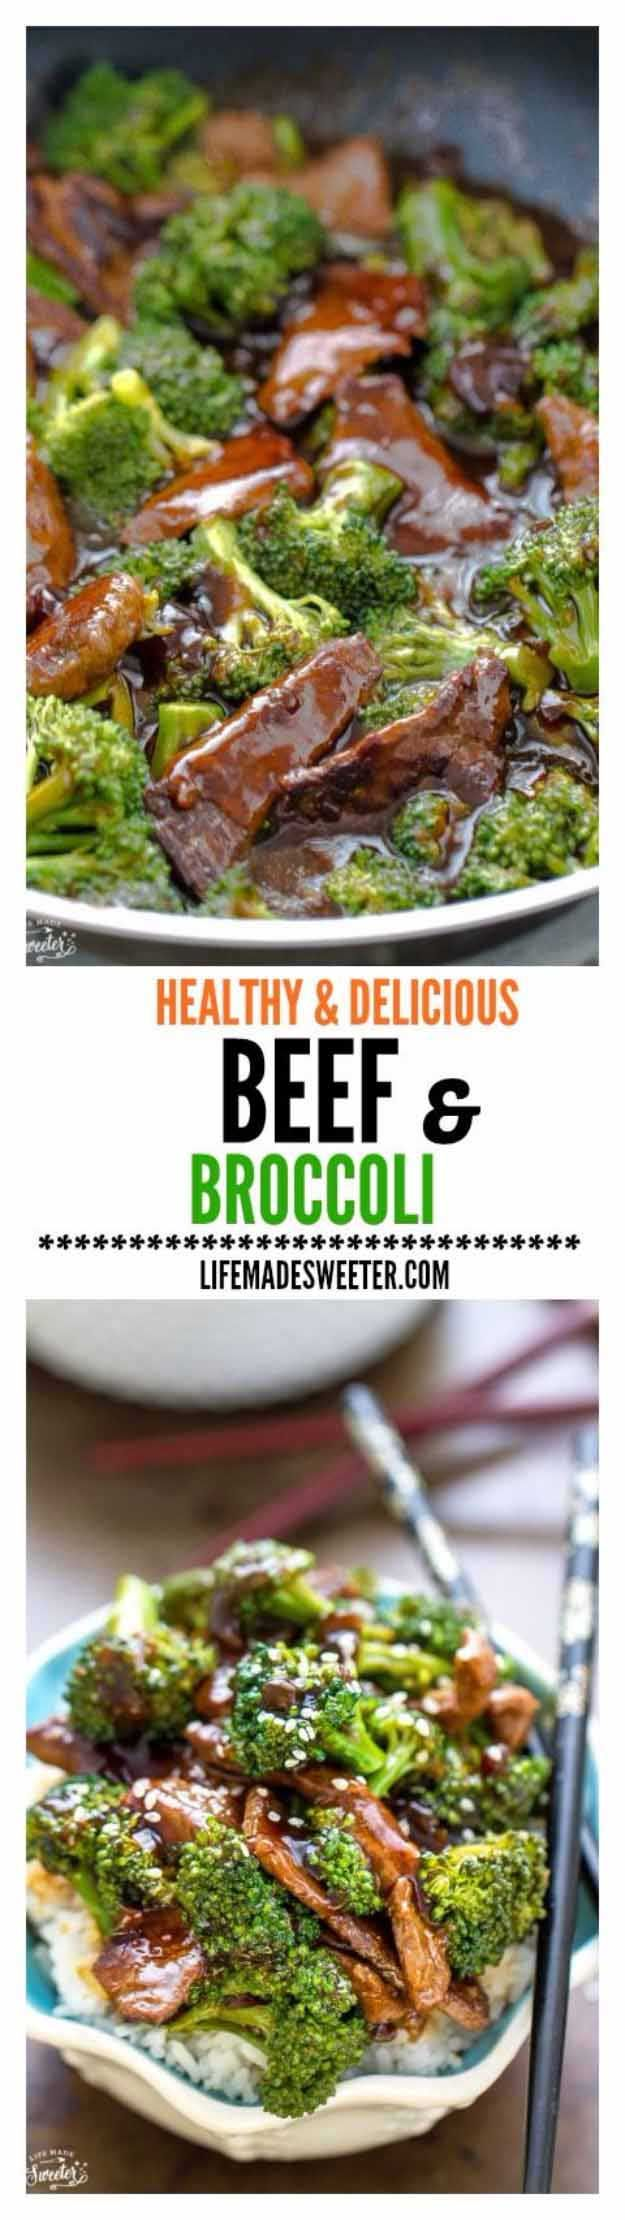 Quick and Easy Healthy Dinner Recipes - Beef and Broccoli - Awesome Recipes For Weight Loss - Great Receipes For One, For Two or For Family Gatherings - Quick Recipes for When You're On A Budget - Chicken and Zucchini Dishes Under 500 Calories - Quick Low Carb Dinners With Beef or Shrimp or Even Vegetarian - Amazing Dishes For Picky Eaters - http://thegoddess.com/easy-healthy-dinner-receipes